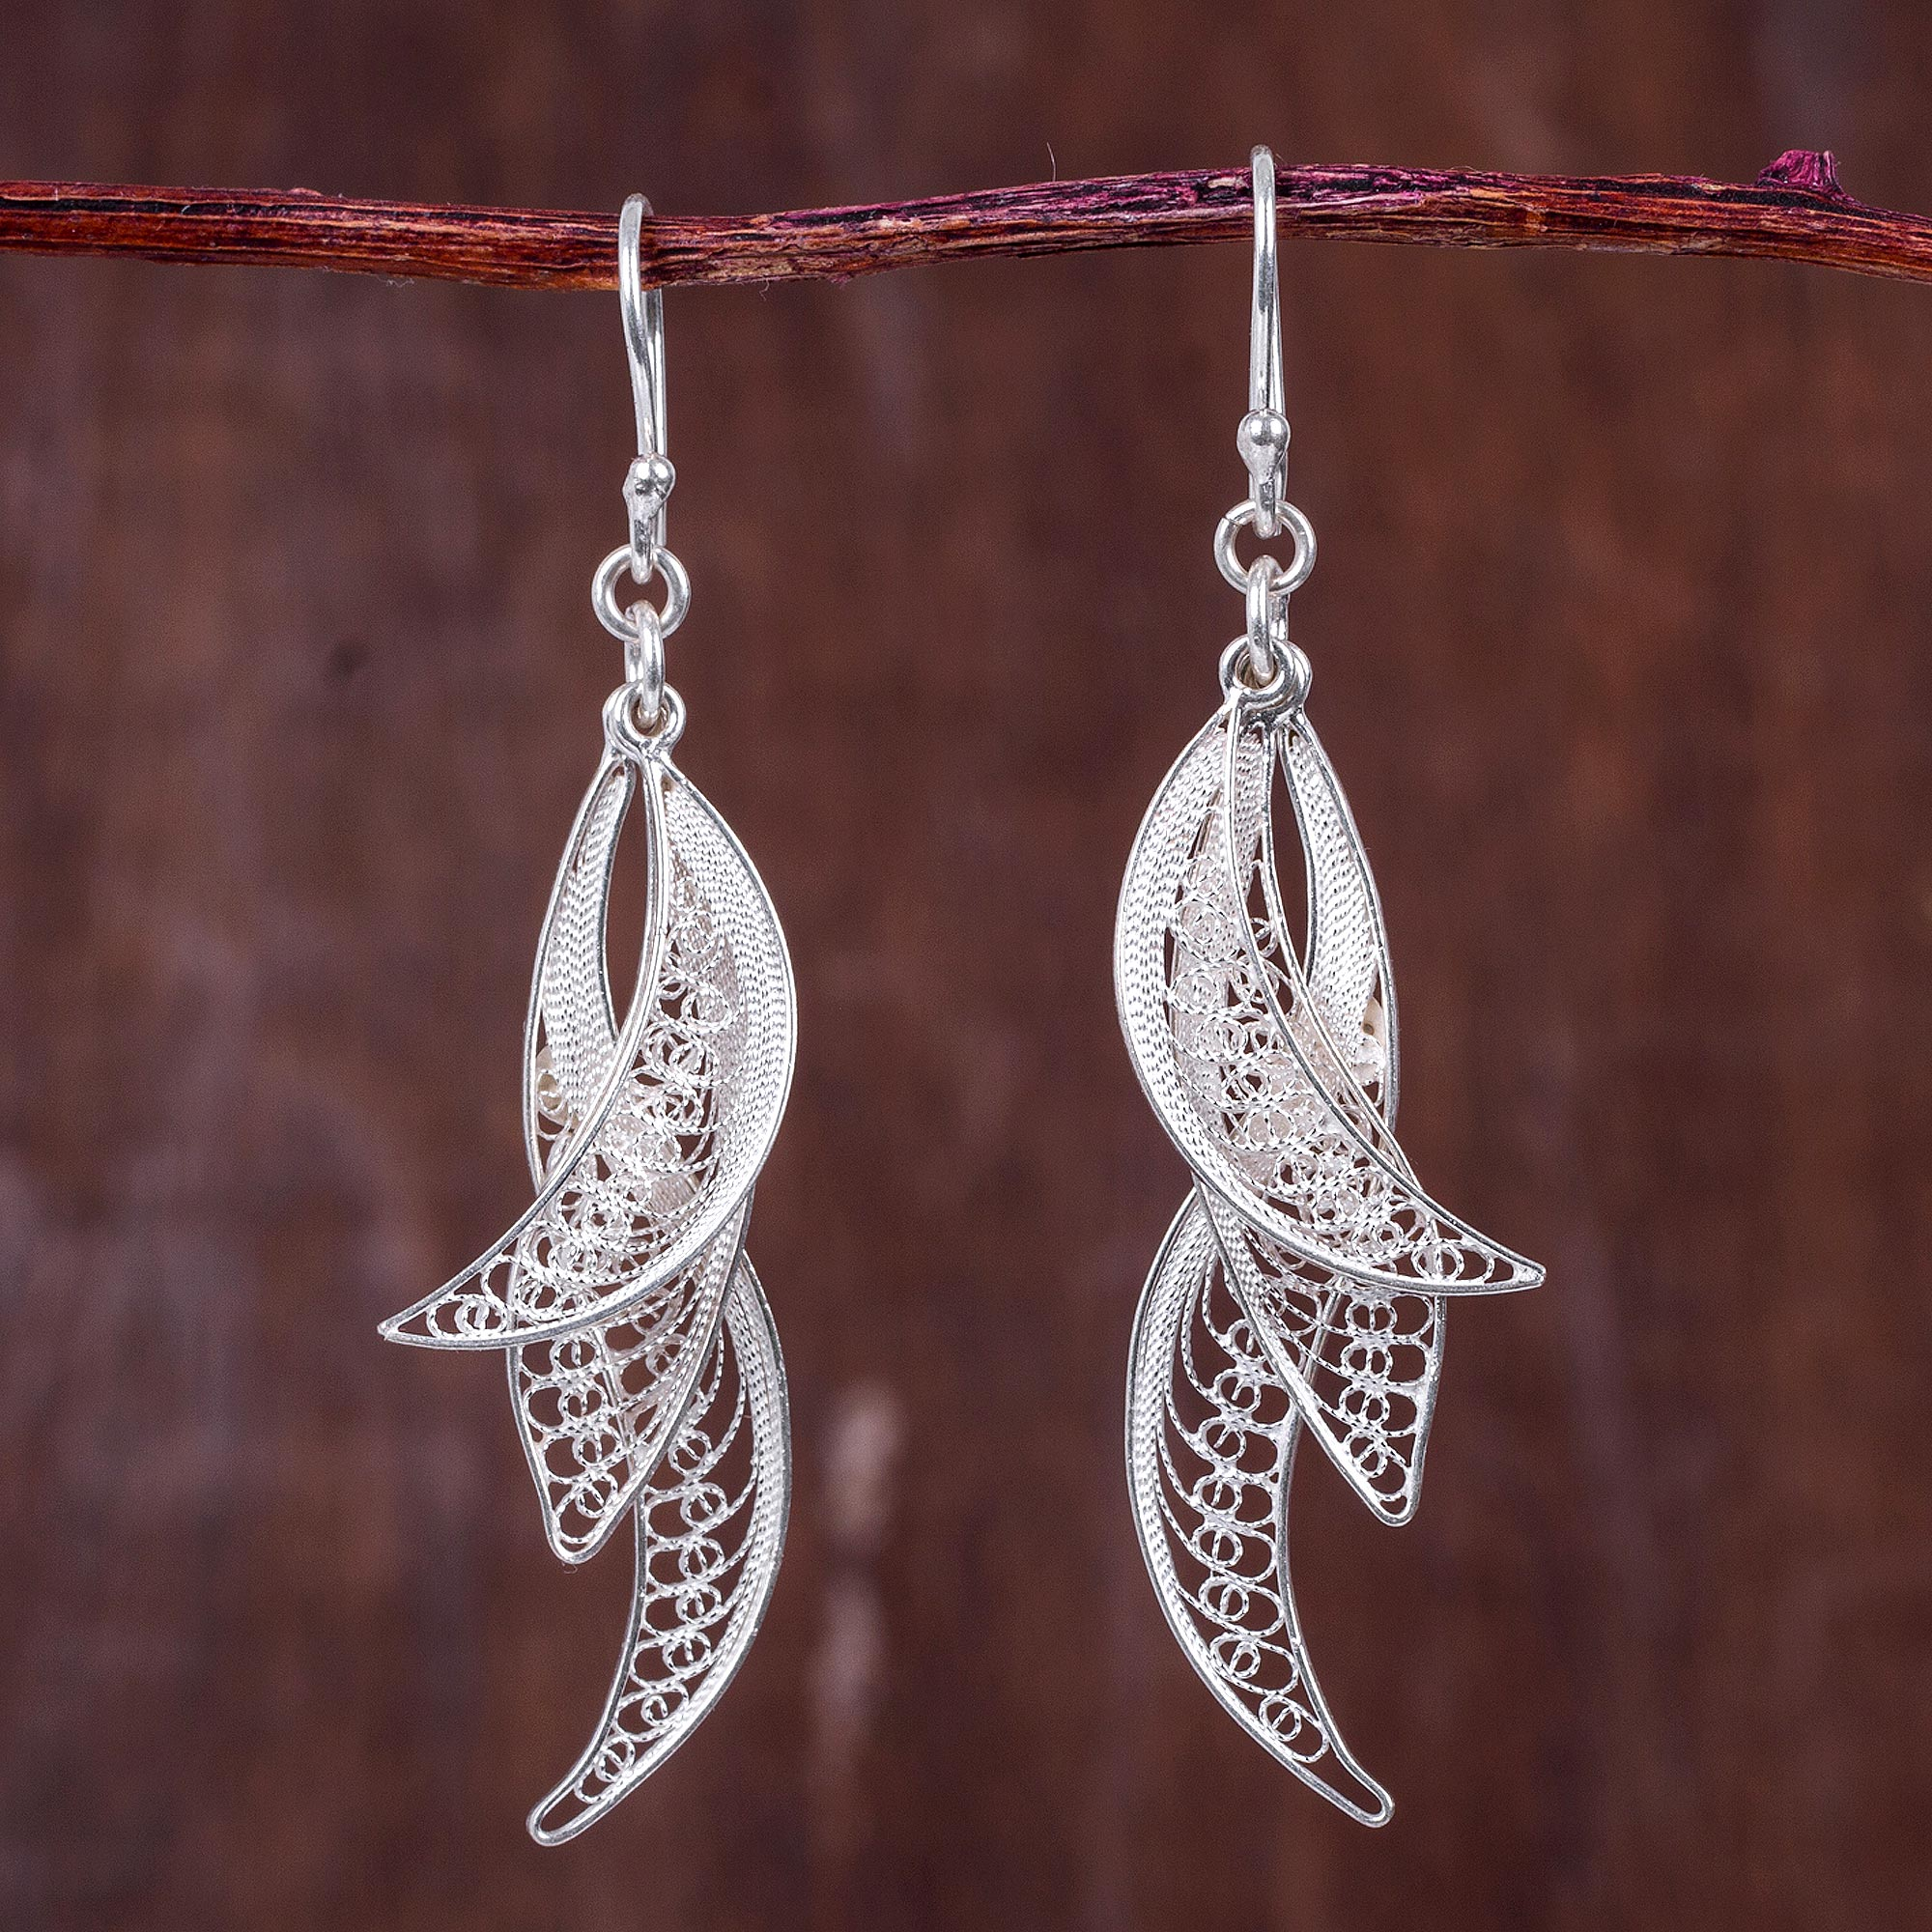 filigree earrings filagree federico from coral mexican shop artist